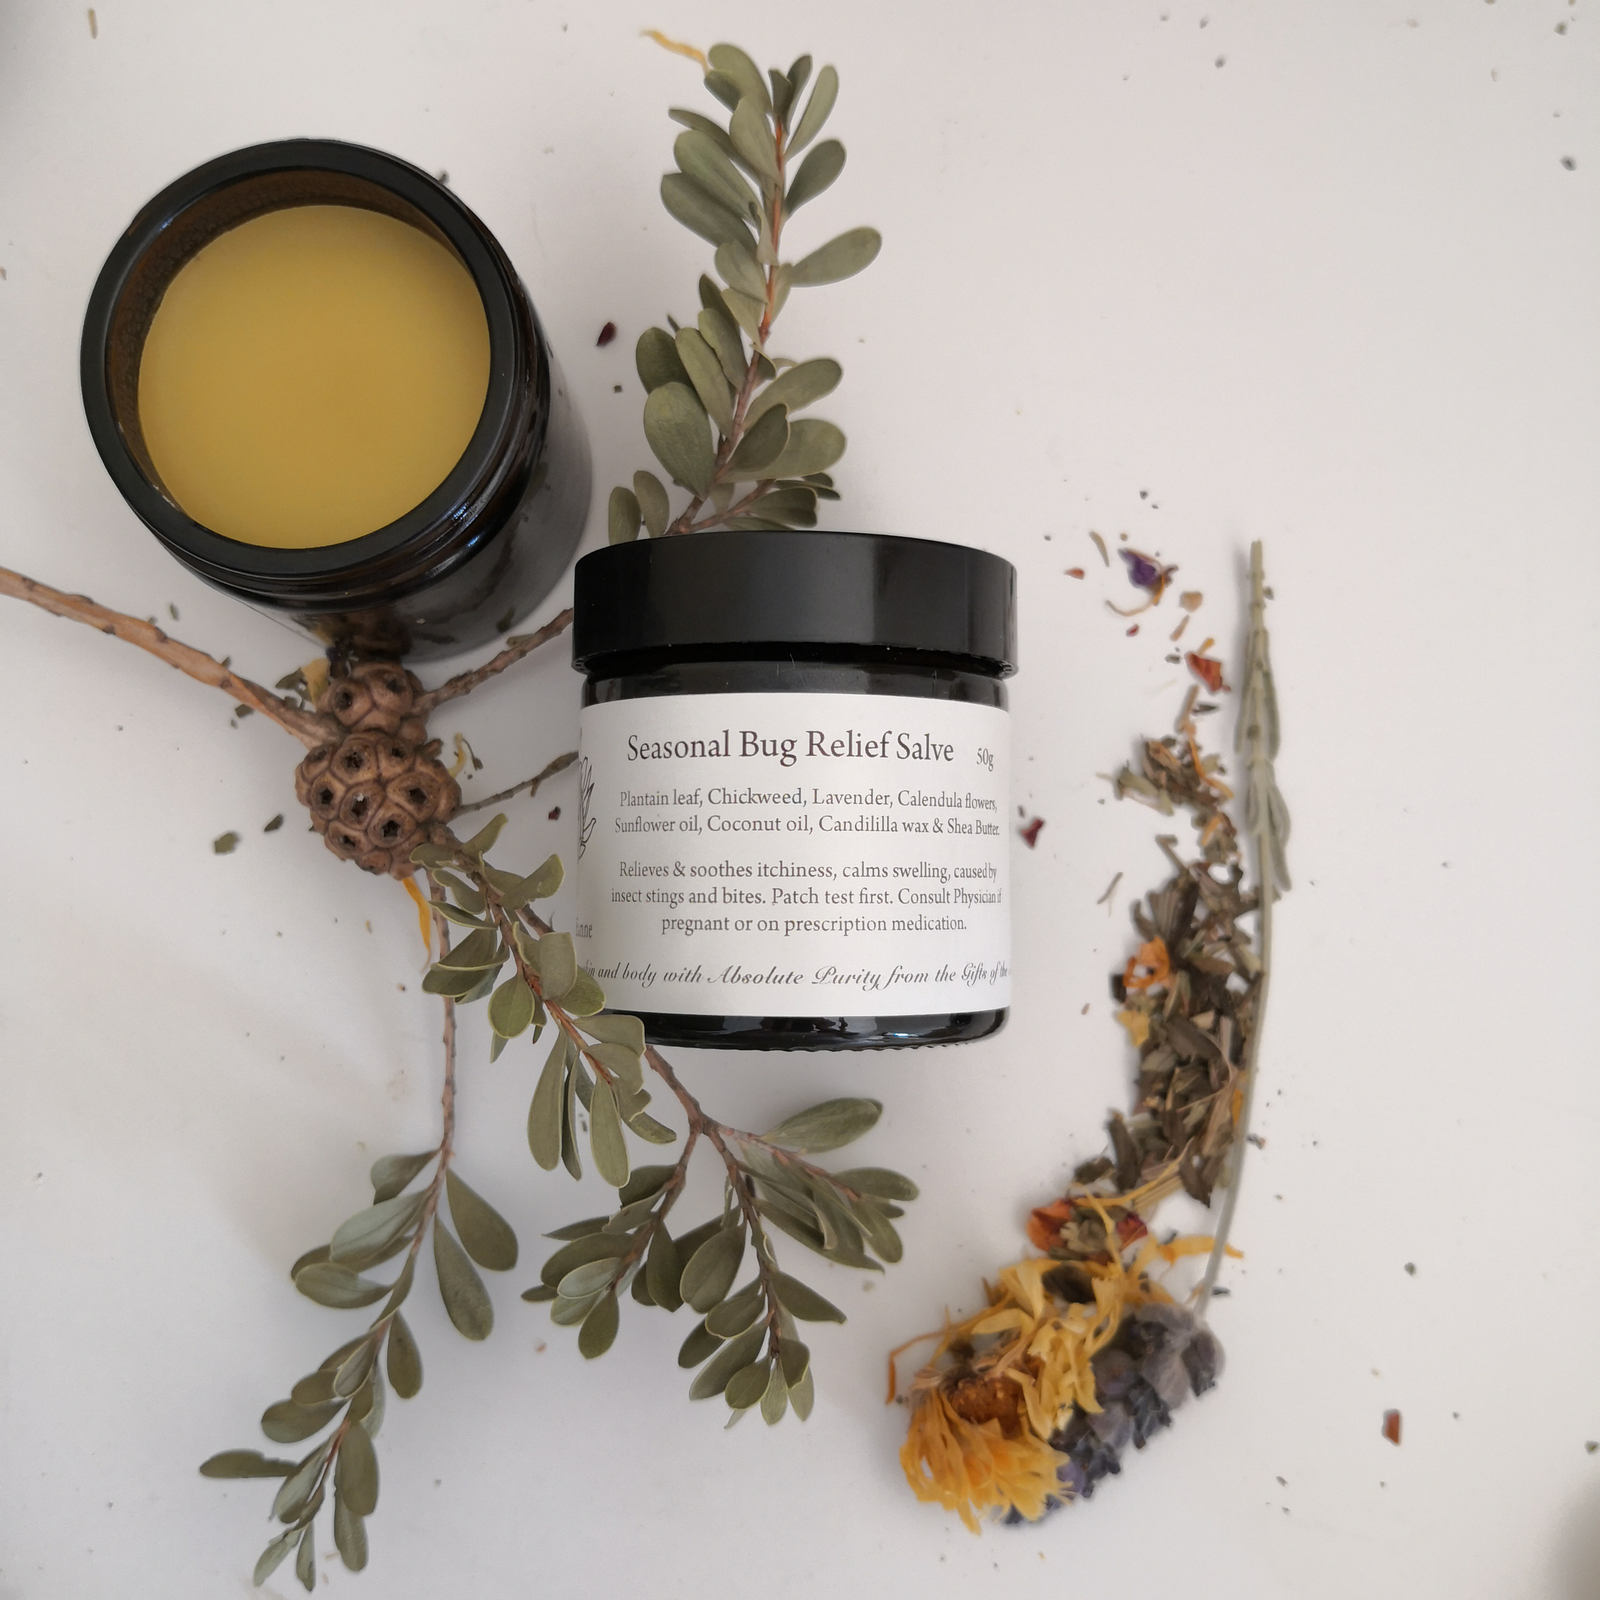 Seasonal bug relief salve